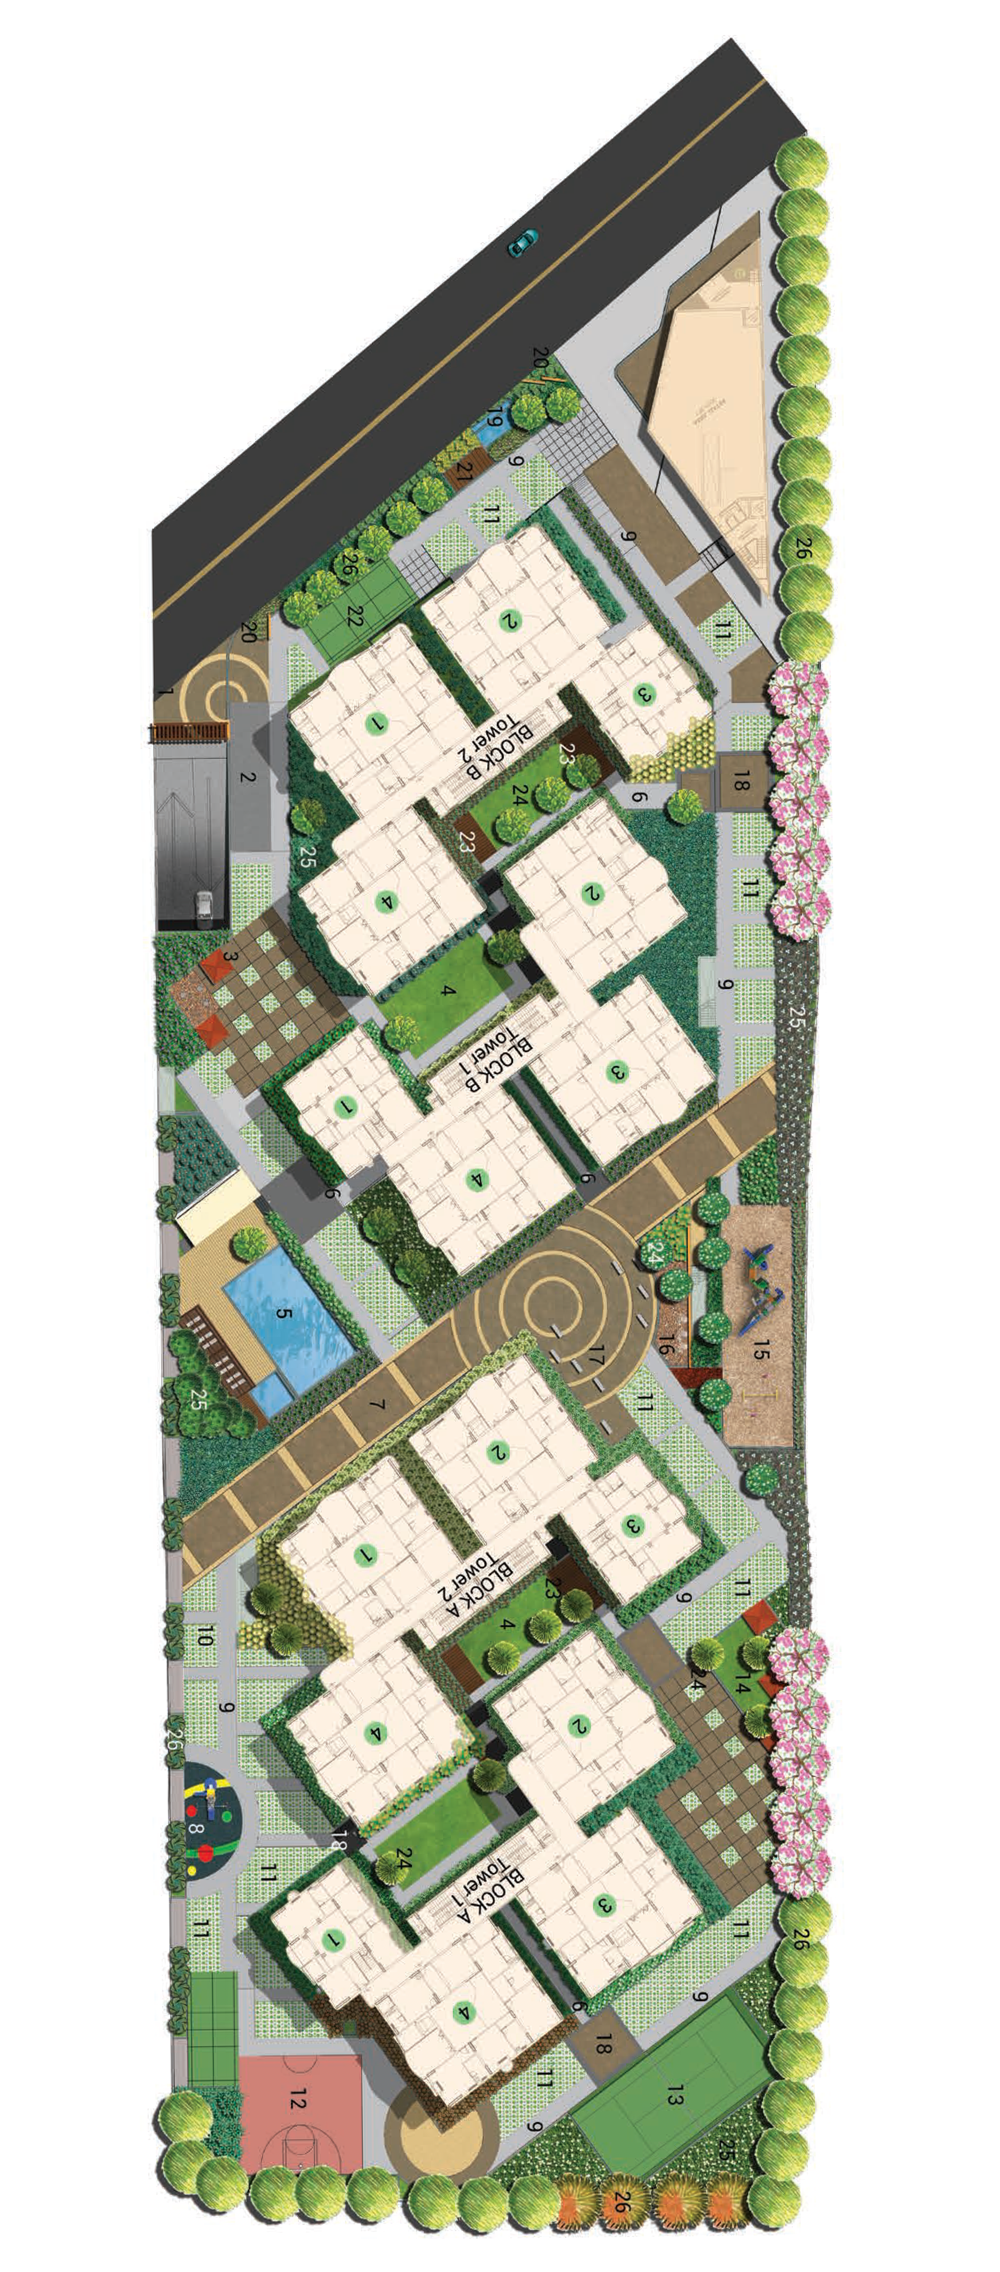 1495790065-layout-sitelayout.png